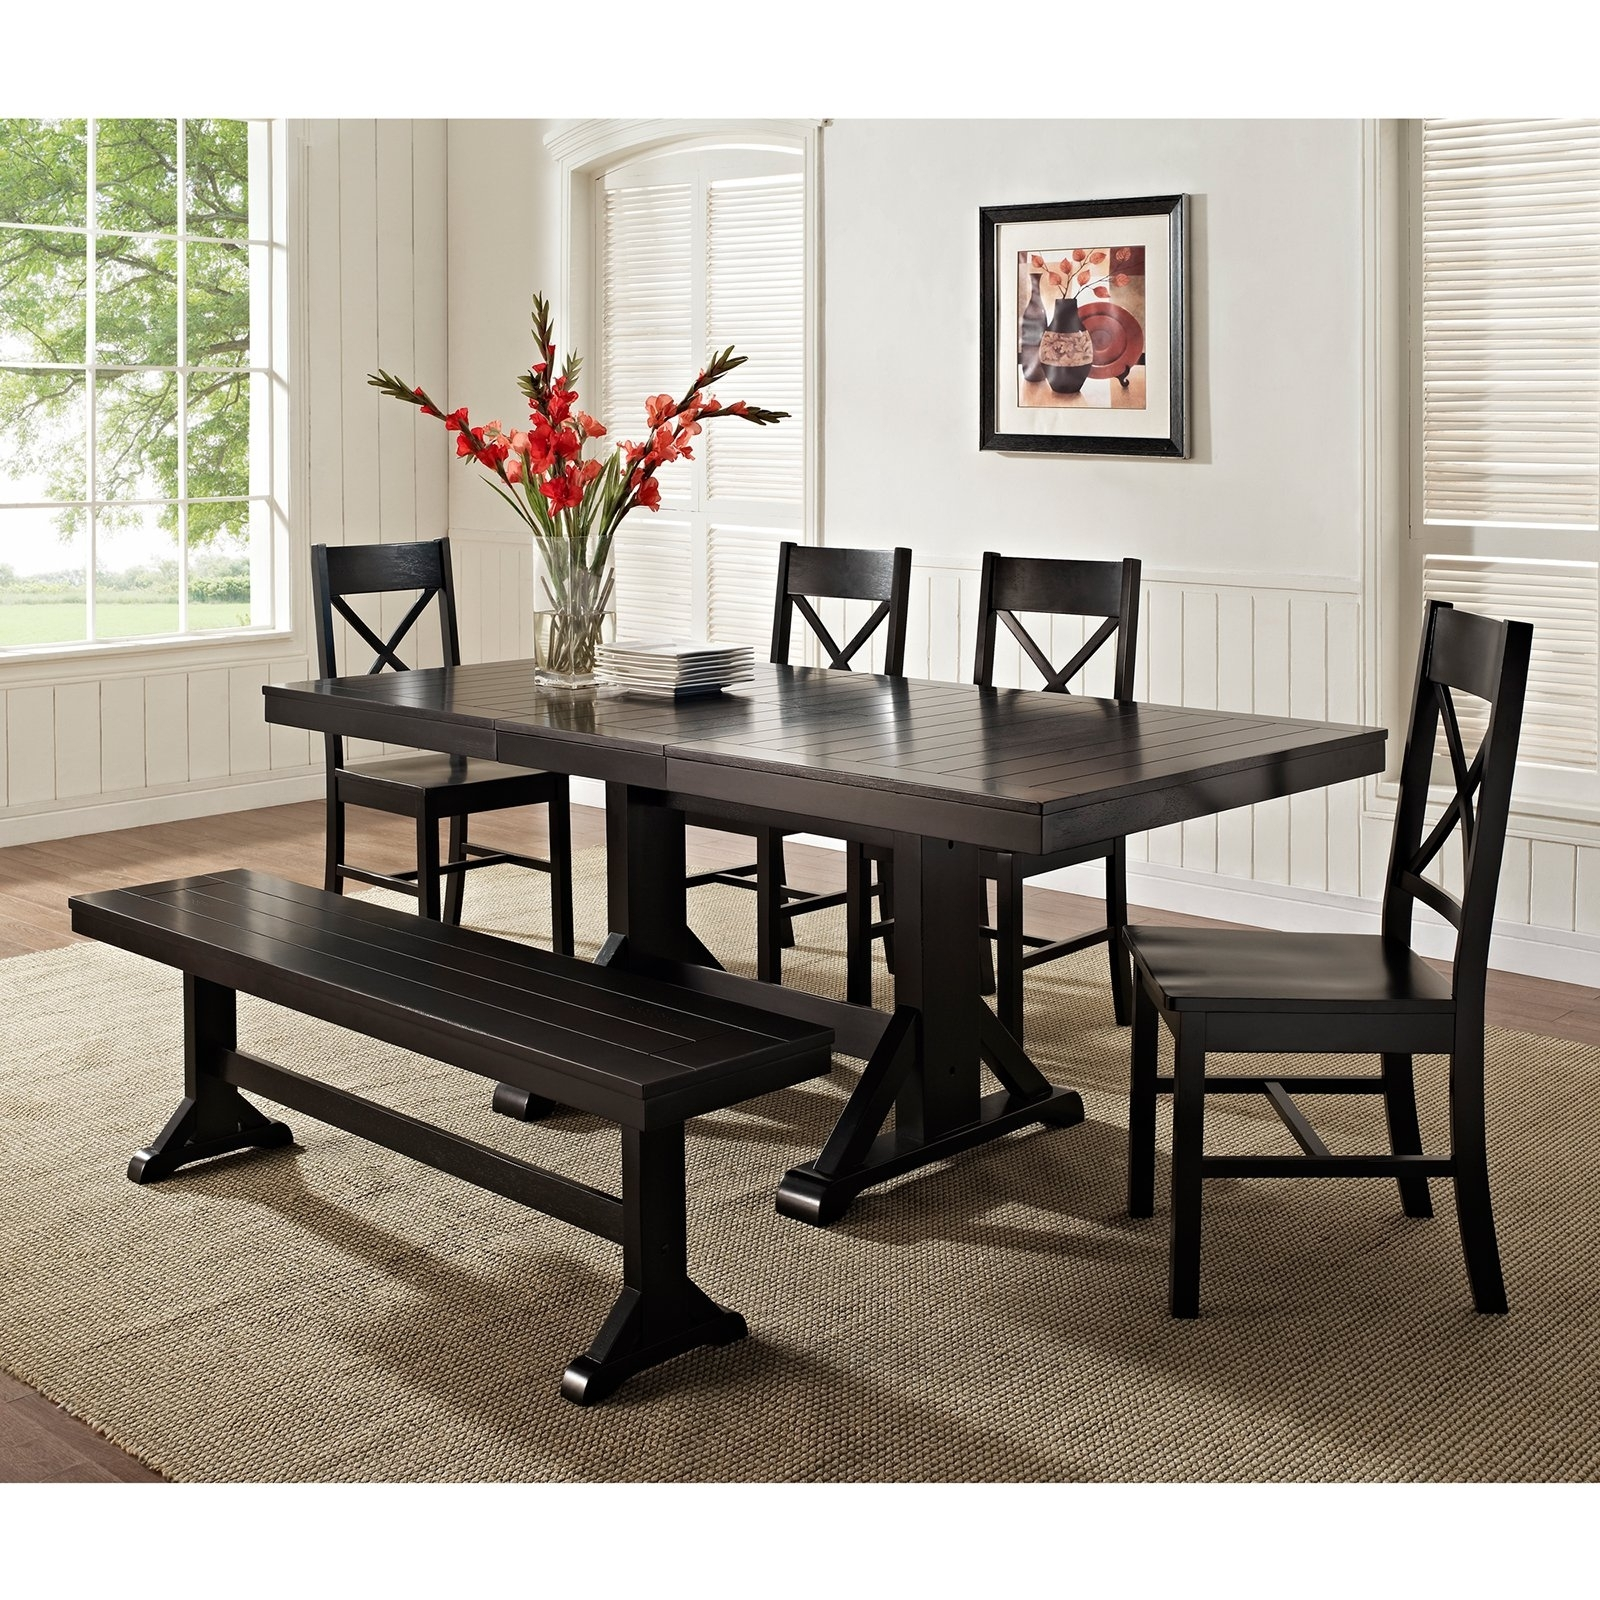 Walker Edison Black 6 Piece Solid Wood Dining Set With Bench with Most Popular Dark Wood Dining Tables And 6 Chairs